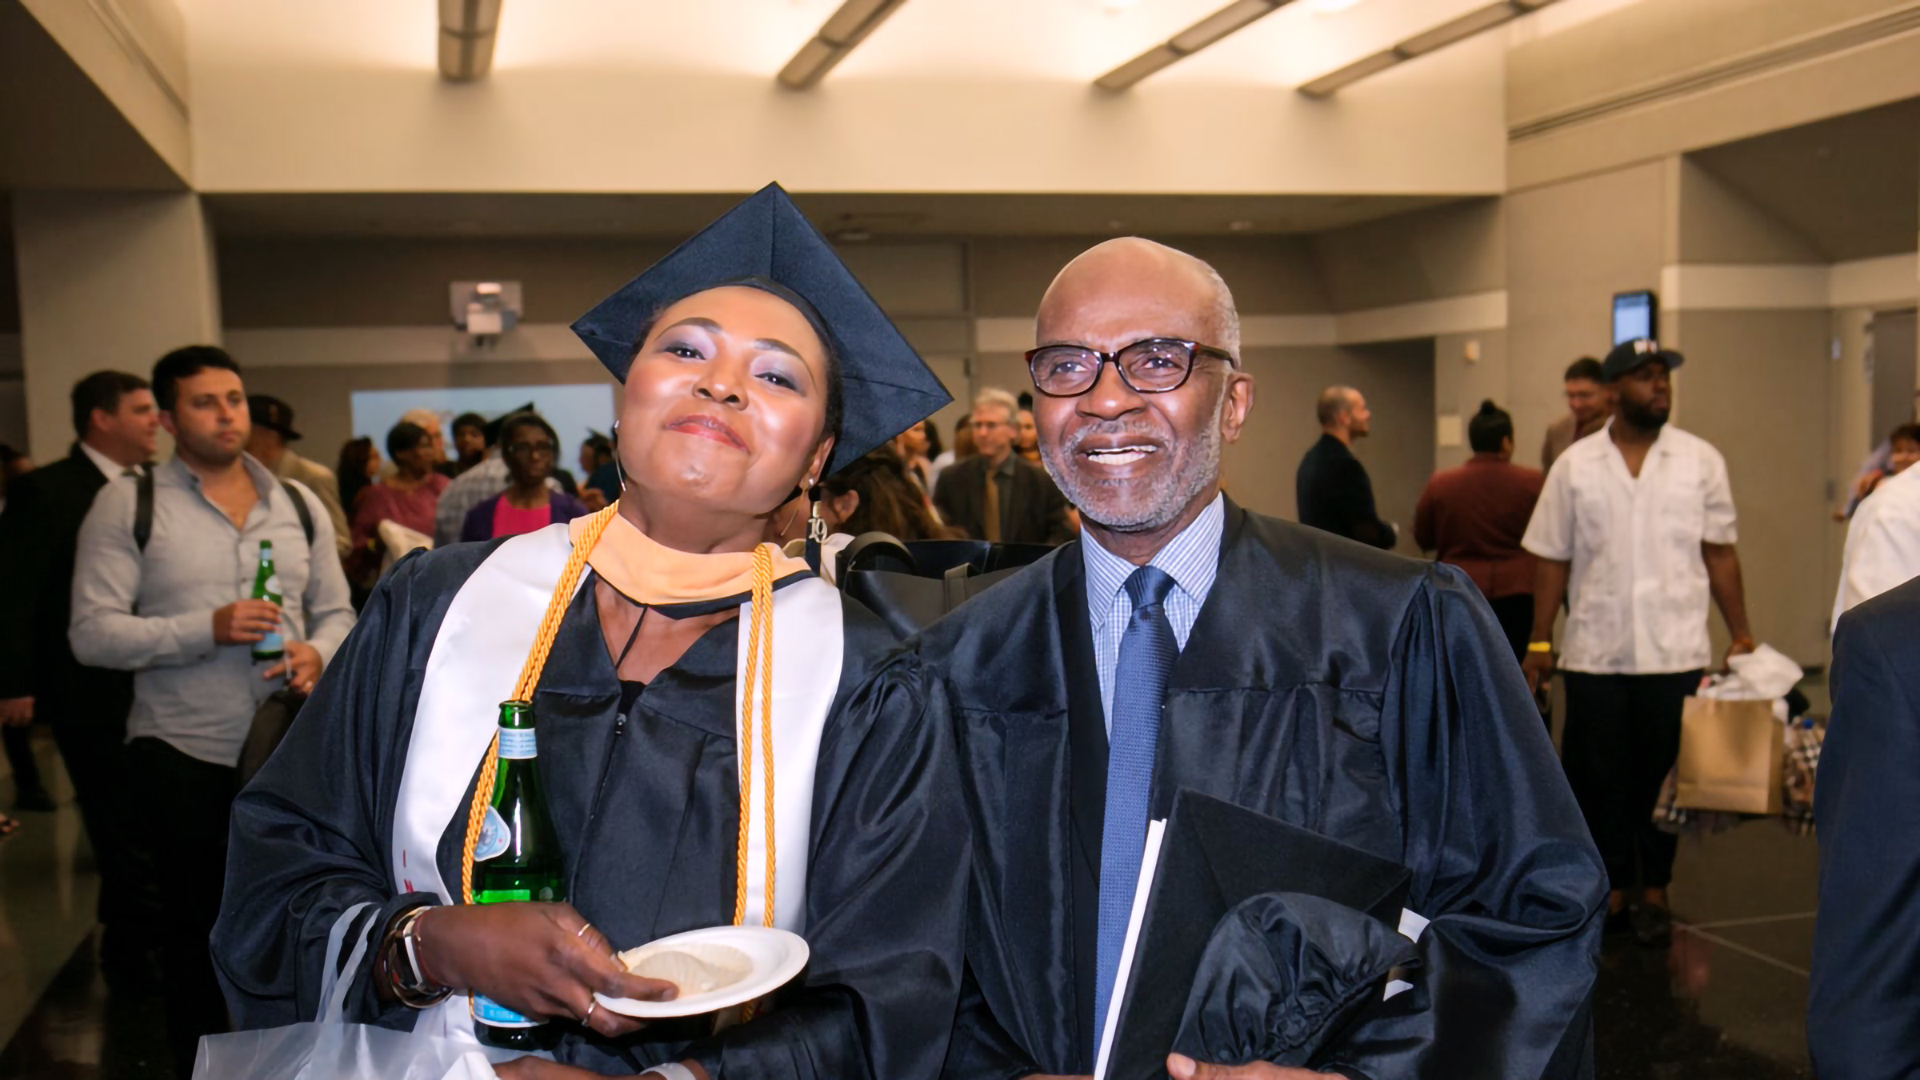 Distinguished Lecturer Dr. James Steele poses with student at SLU's 2019 commencement